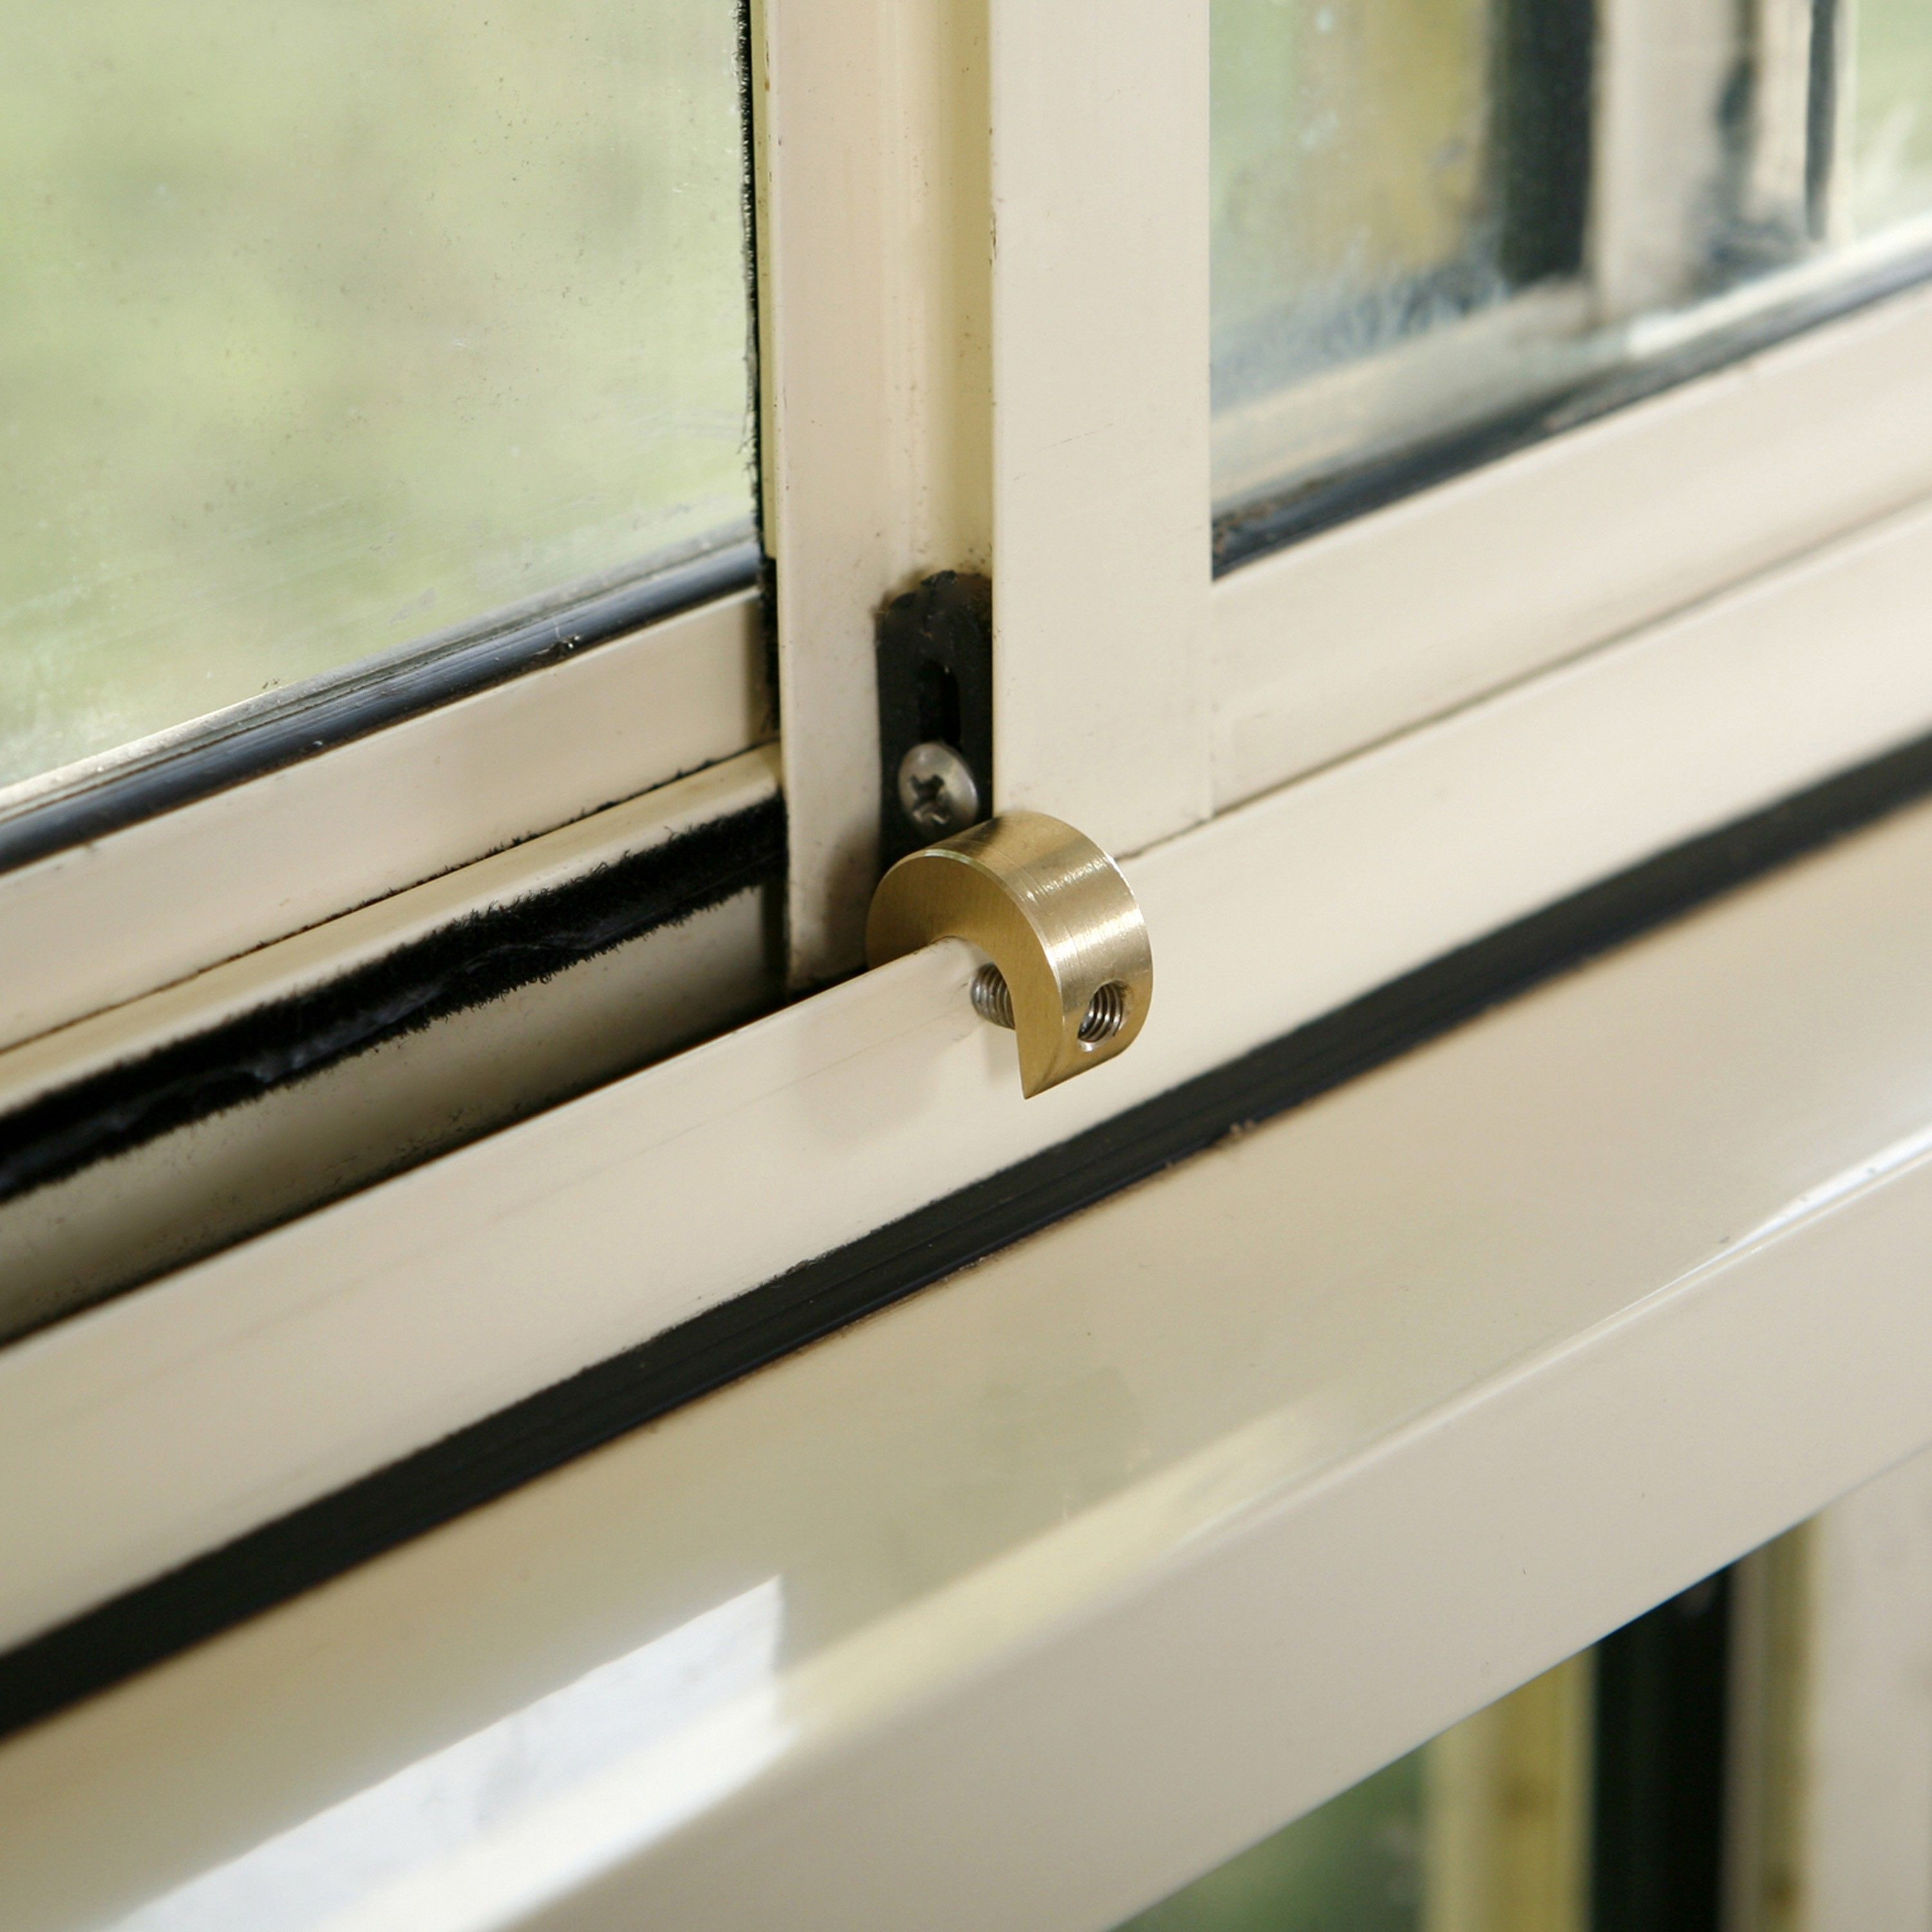 Windowlocks For Slide Type Of Windows Use This Lock To